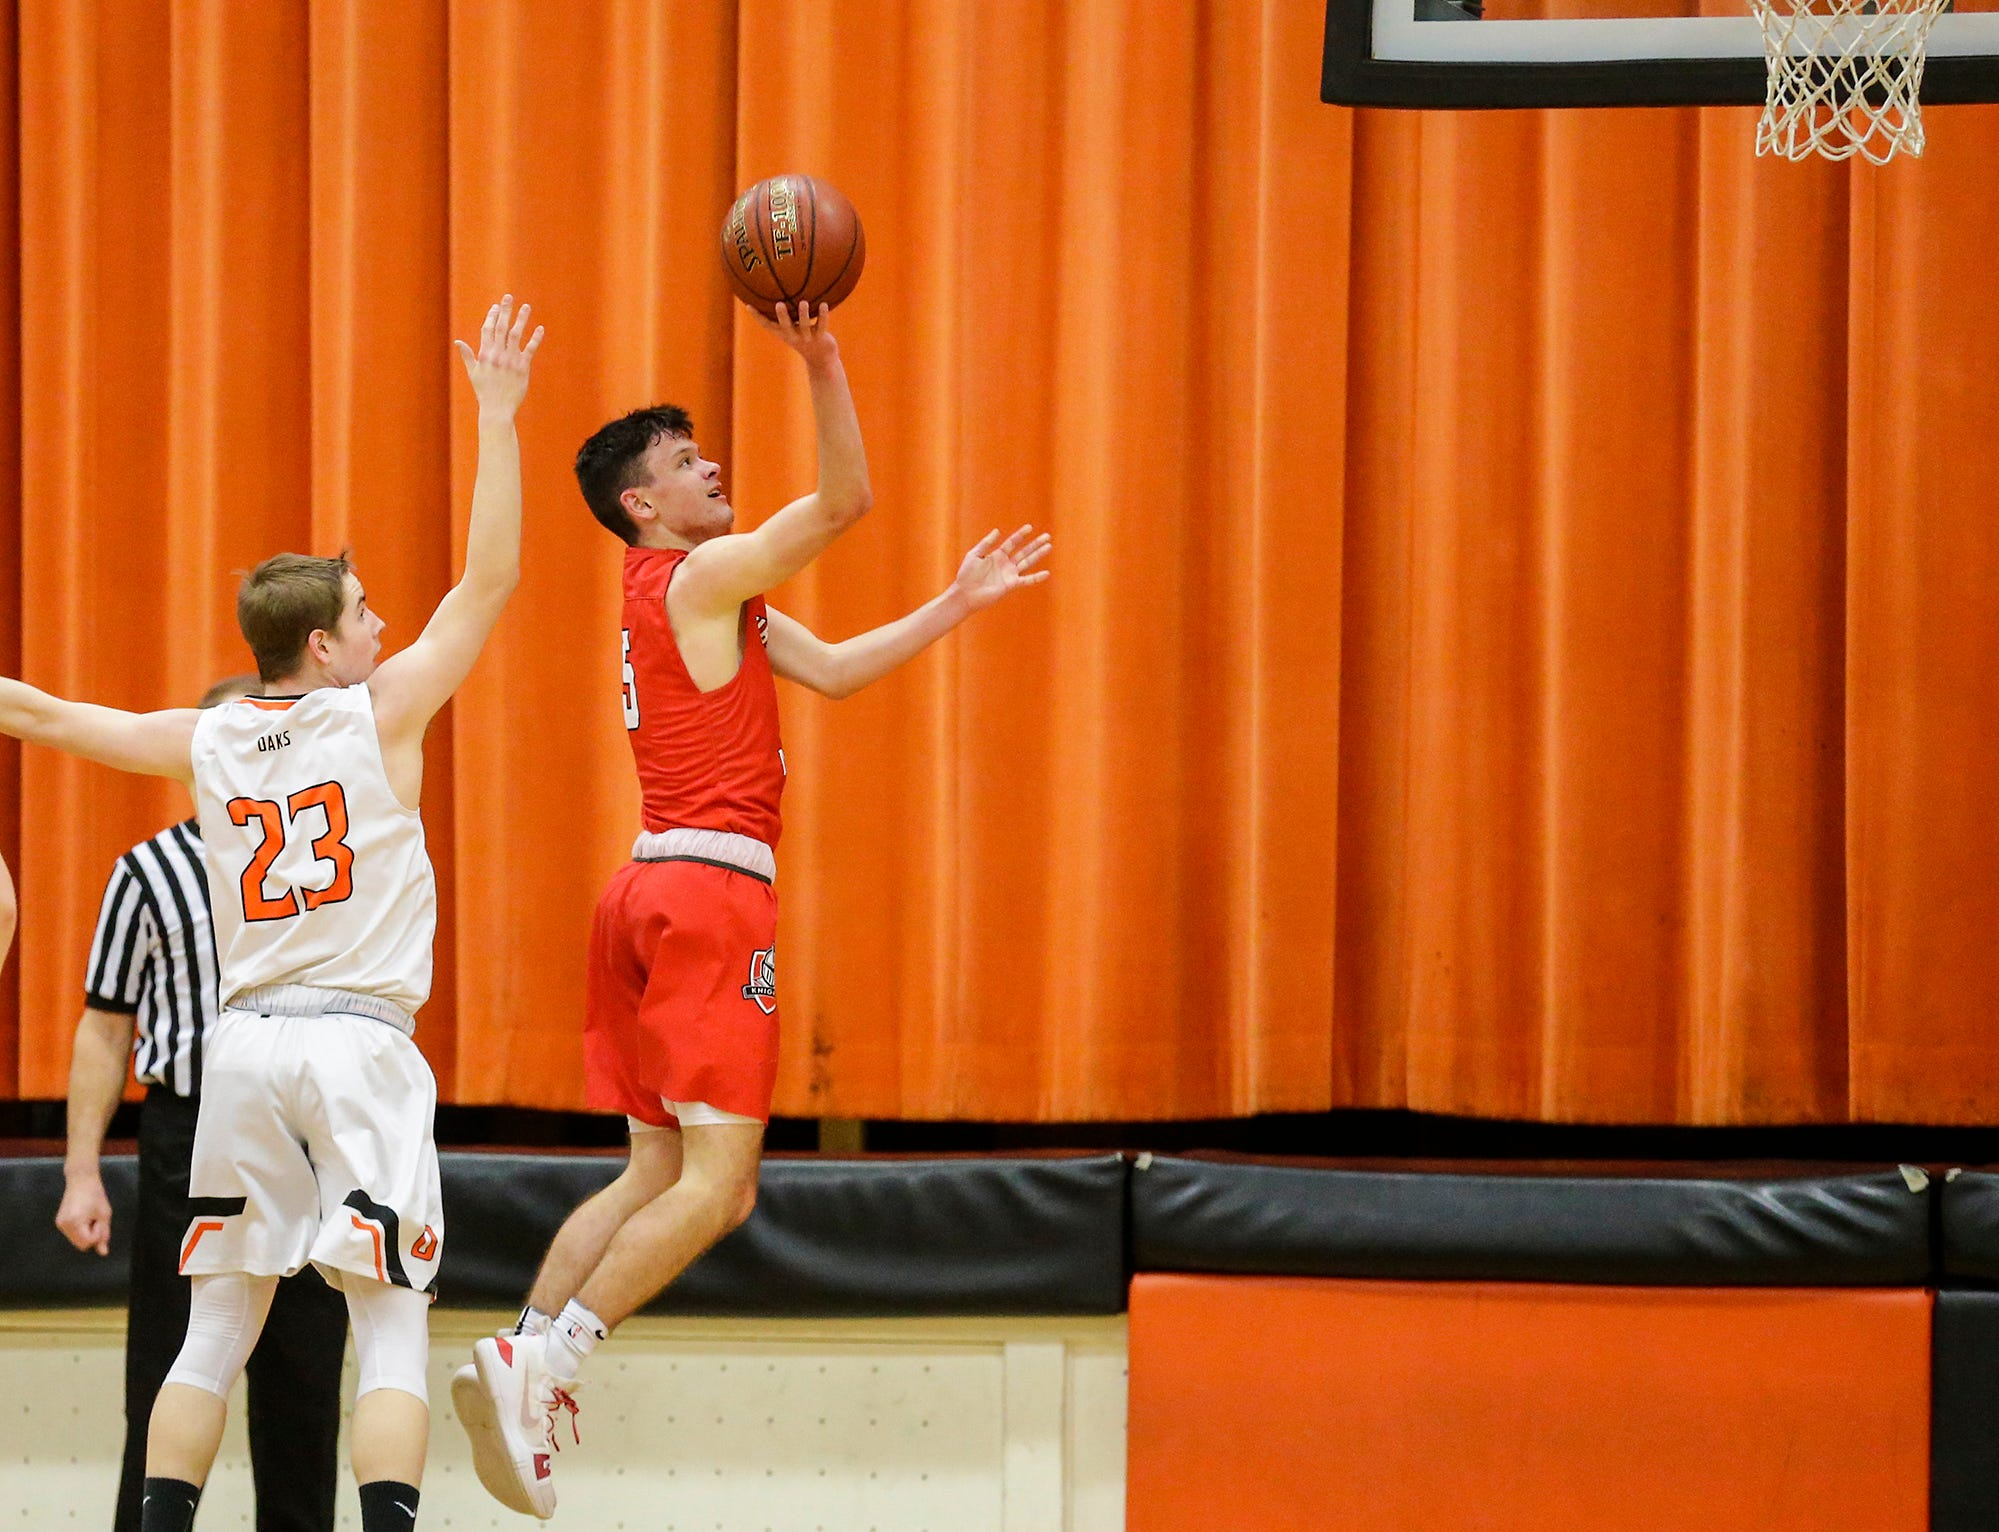 Oshkosh Lourdes Academy boys basketball's Jack McKellips goes up for a basket against Oakfield High School's Max Margelofsky during their game Thursday, January 24, 2019 in Oakfield. Lourdes Academy won the game 83-48. Doug Raflik/USA TODAY NETWORK-Wisconsin